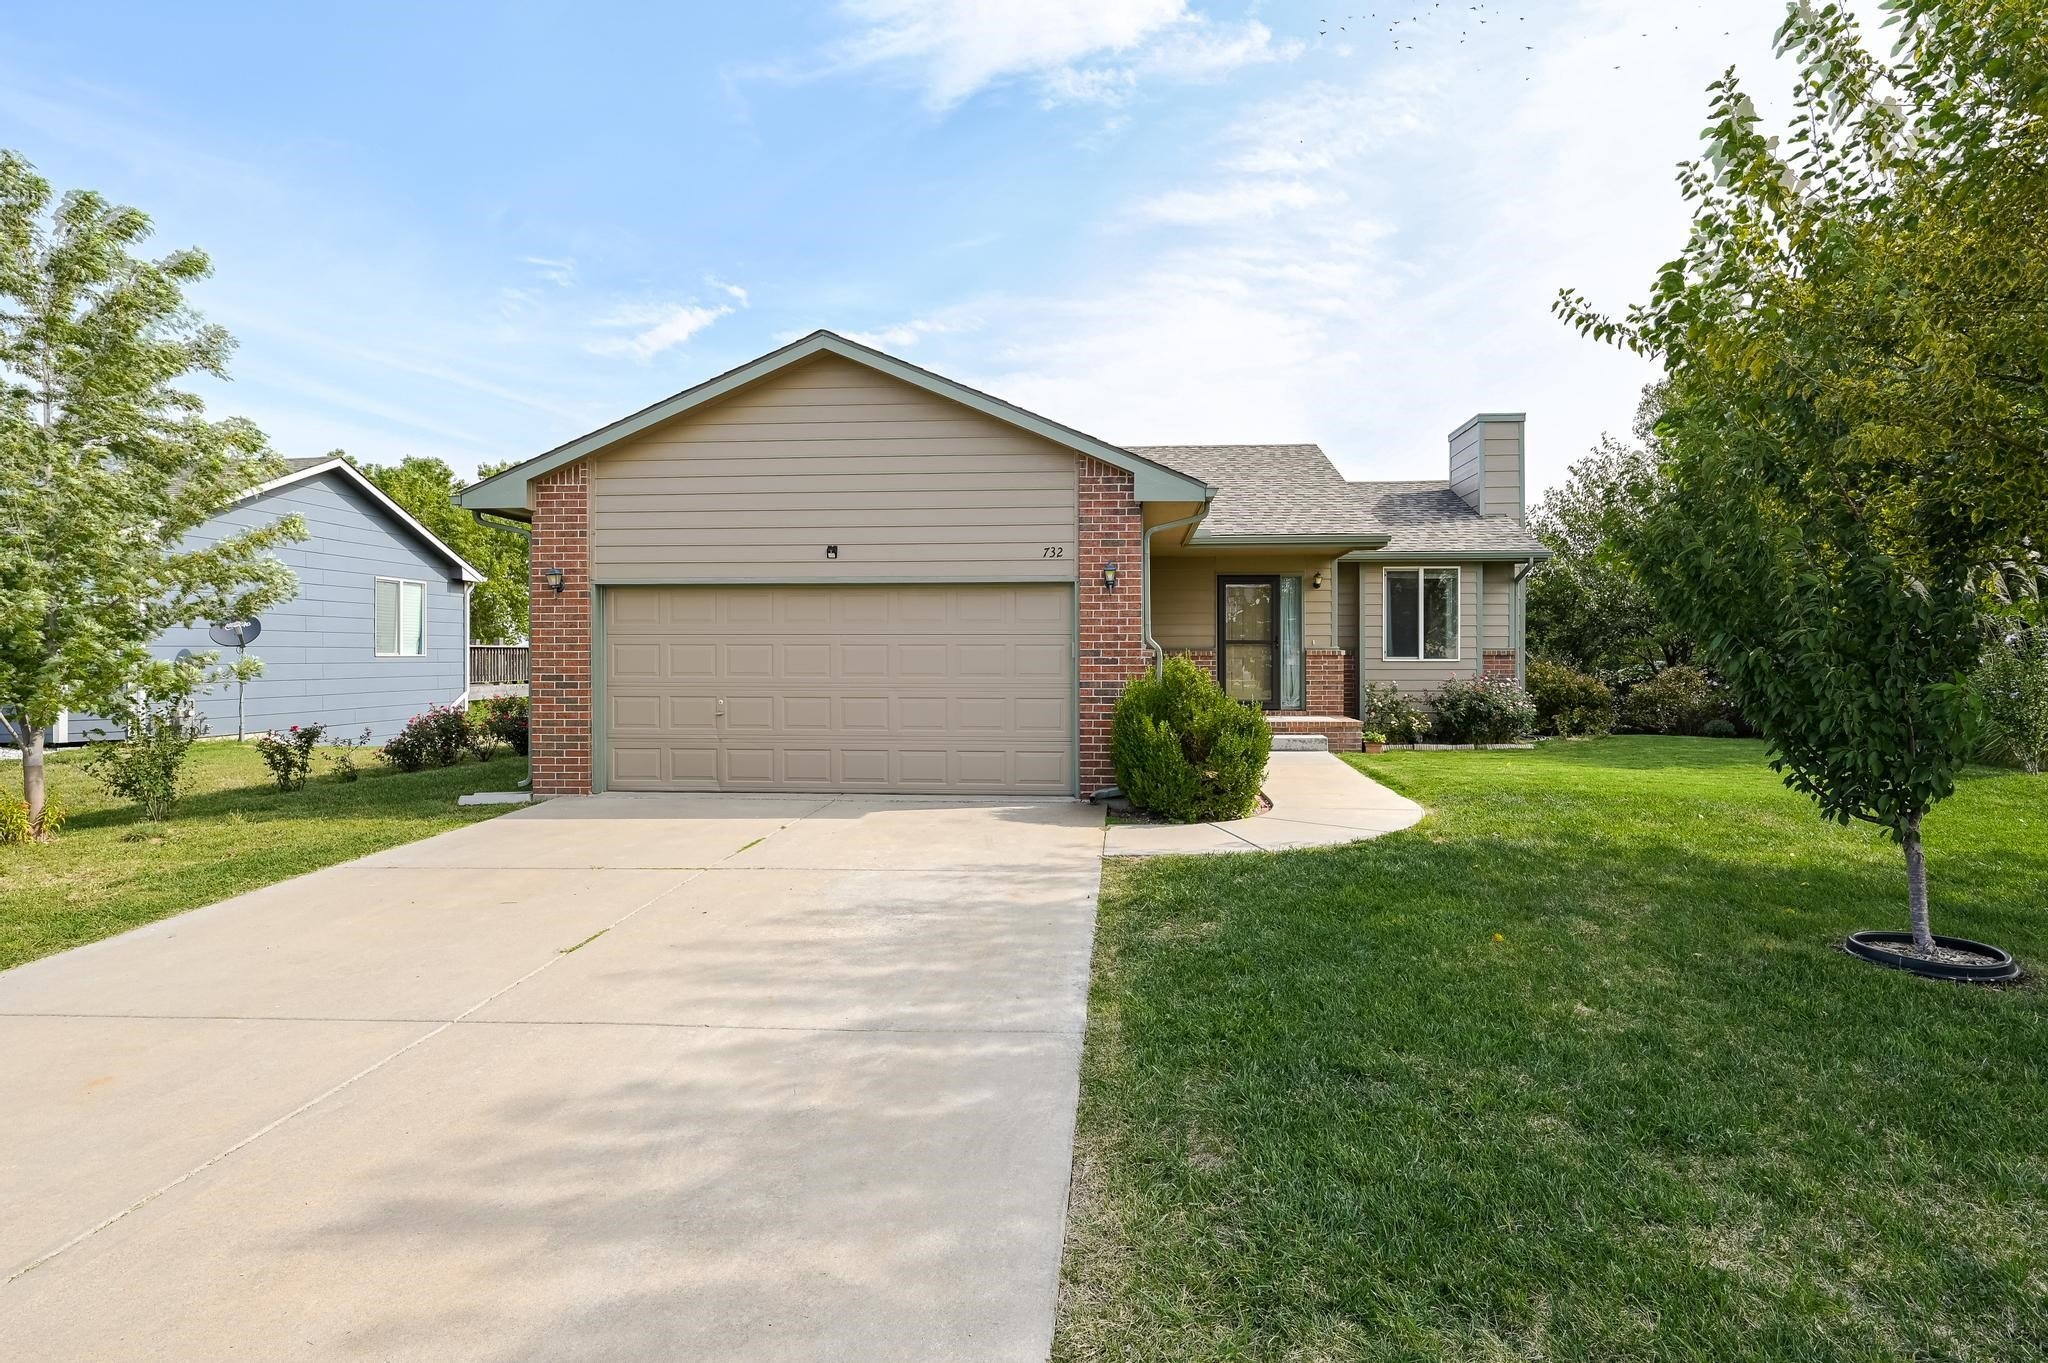 Move in ready home in the Maize School District! Beautiful landscaping and the freshly painted exter